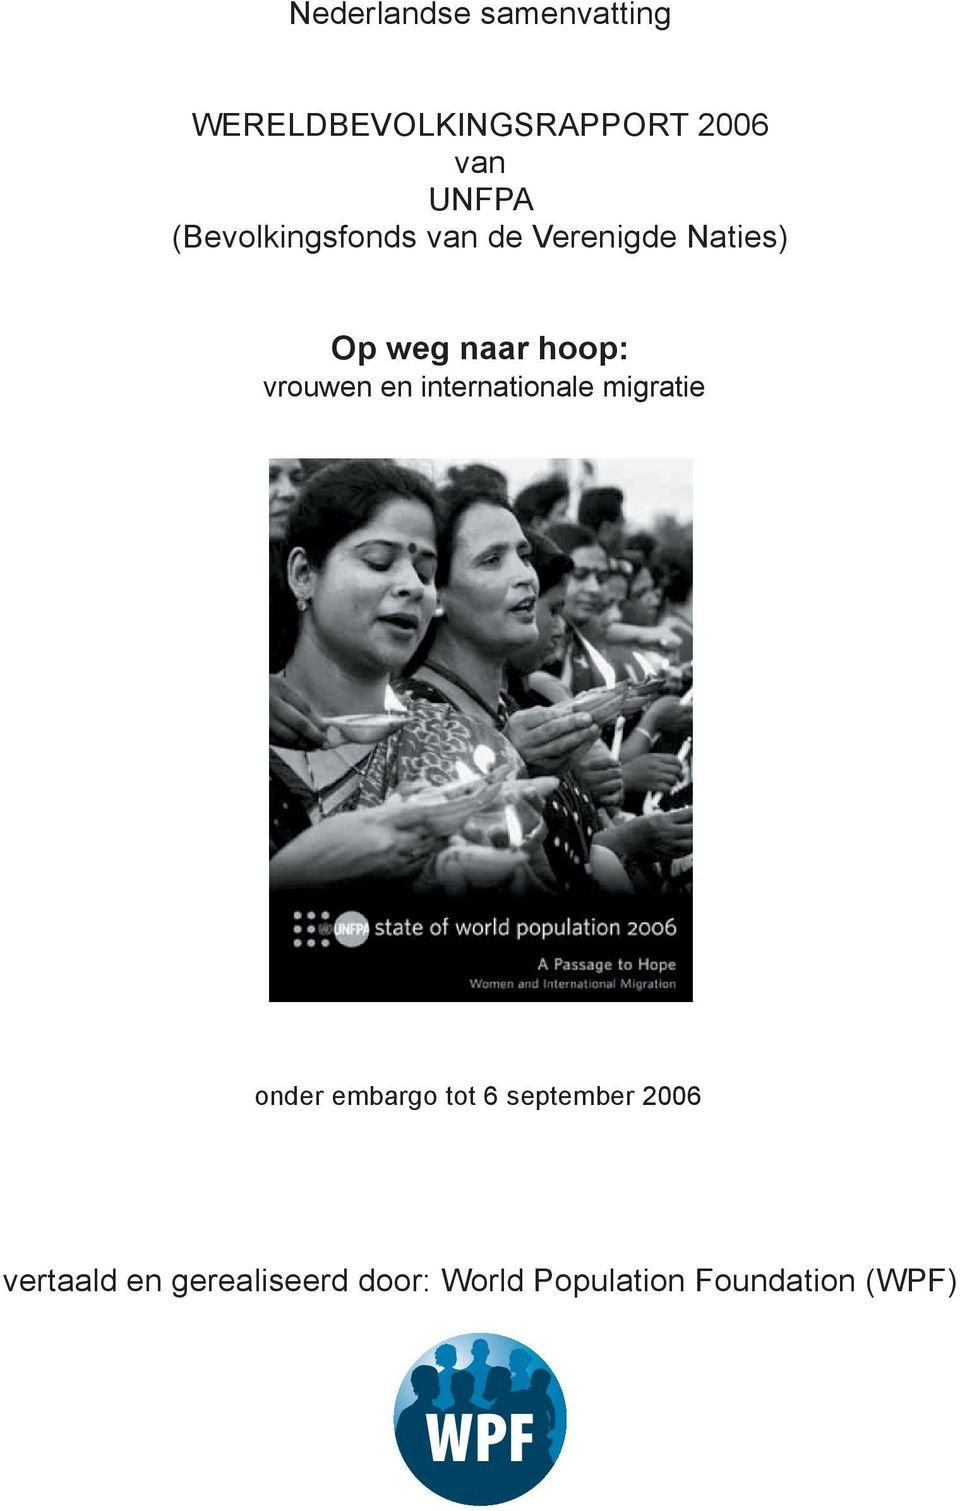 vrouwen en internationale migratie onder embargo tot 6 september